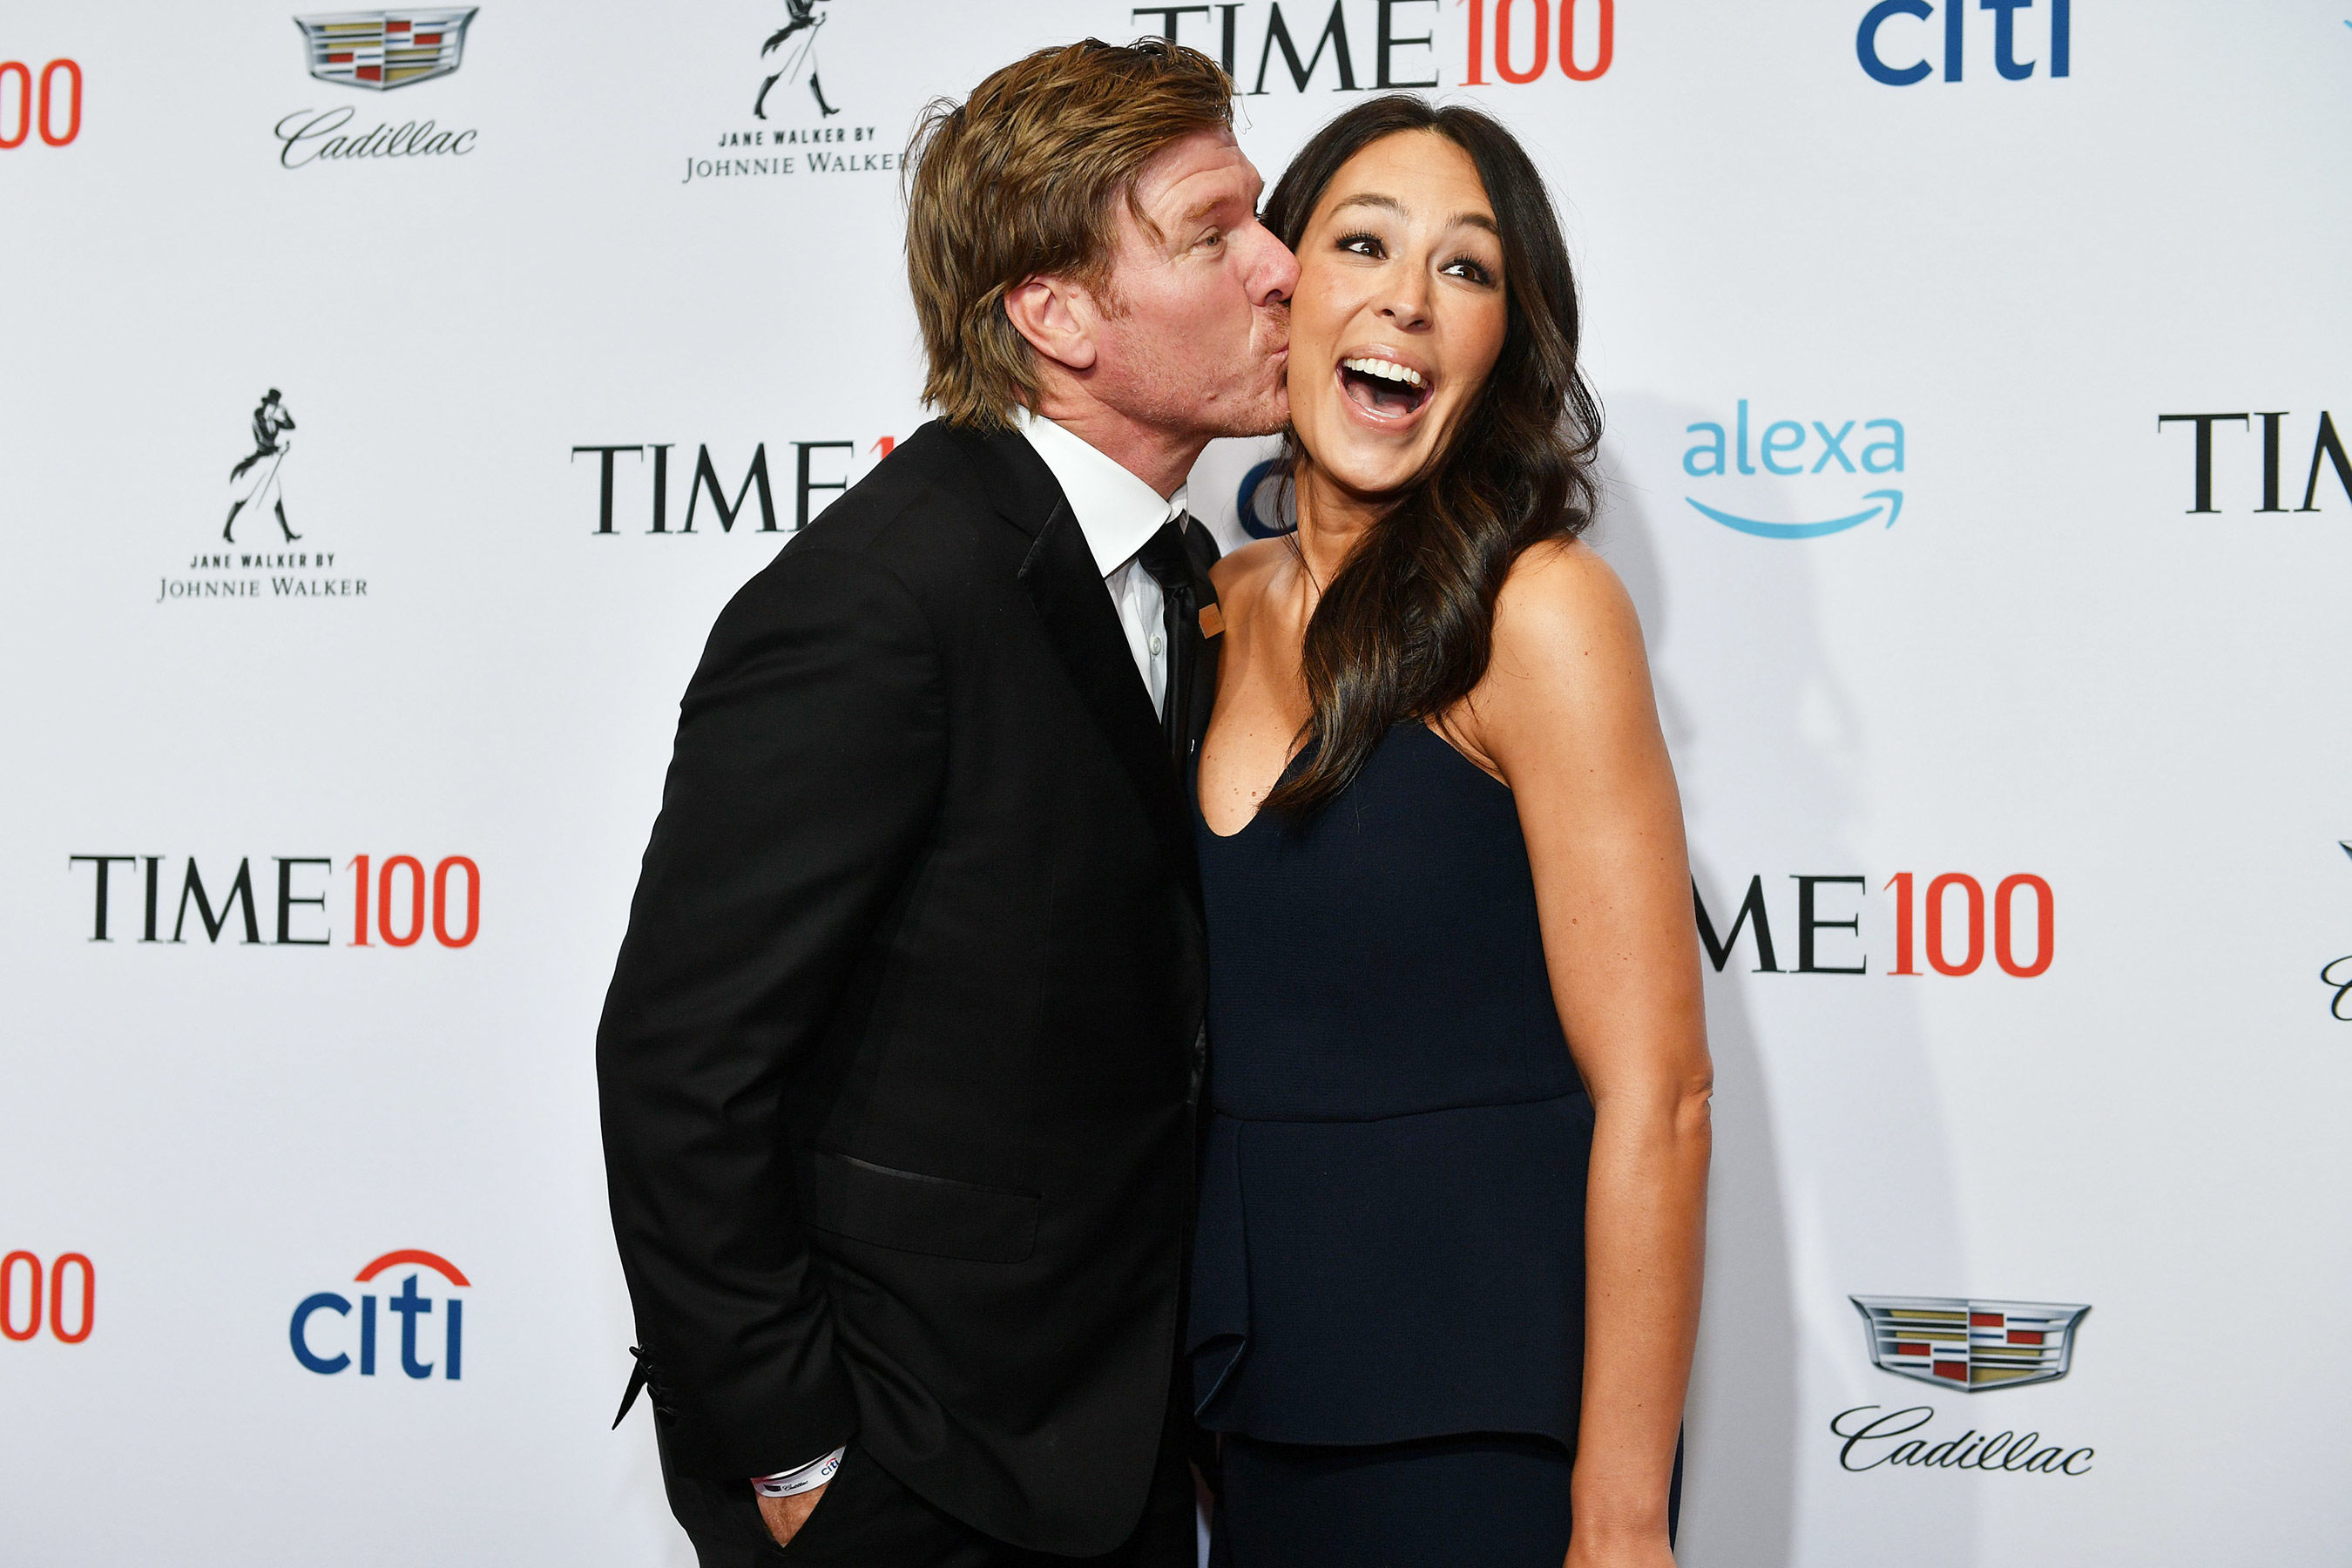 WATCH: Chip and Joanna Gaines Share a First Look at Their New TV Network Teaser: 'We Can't Wait'